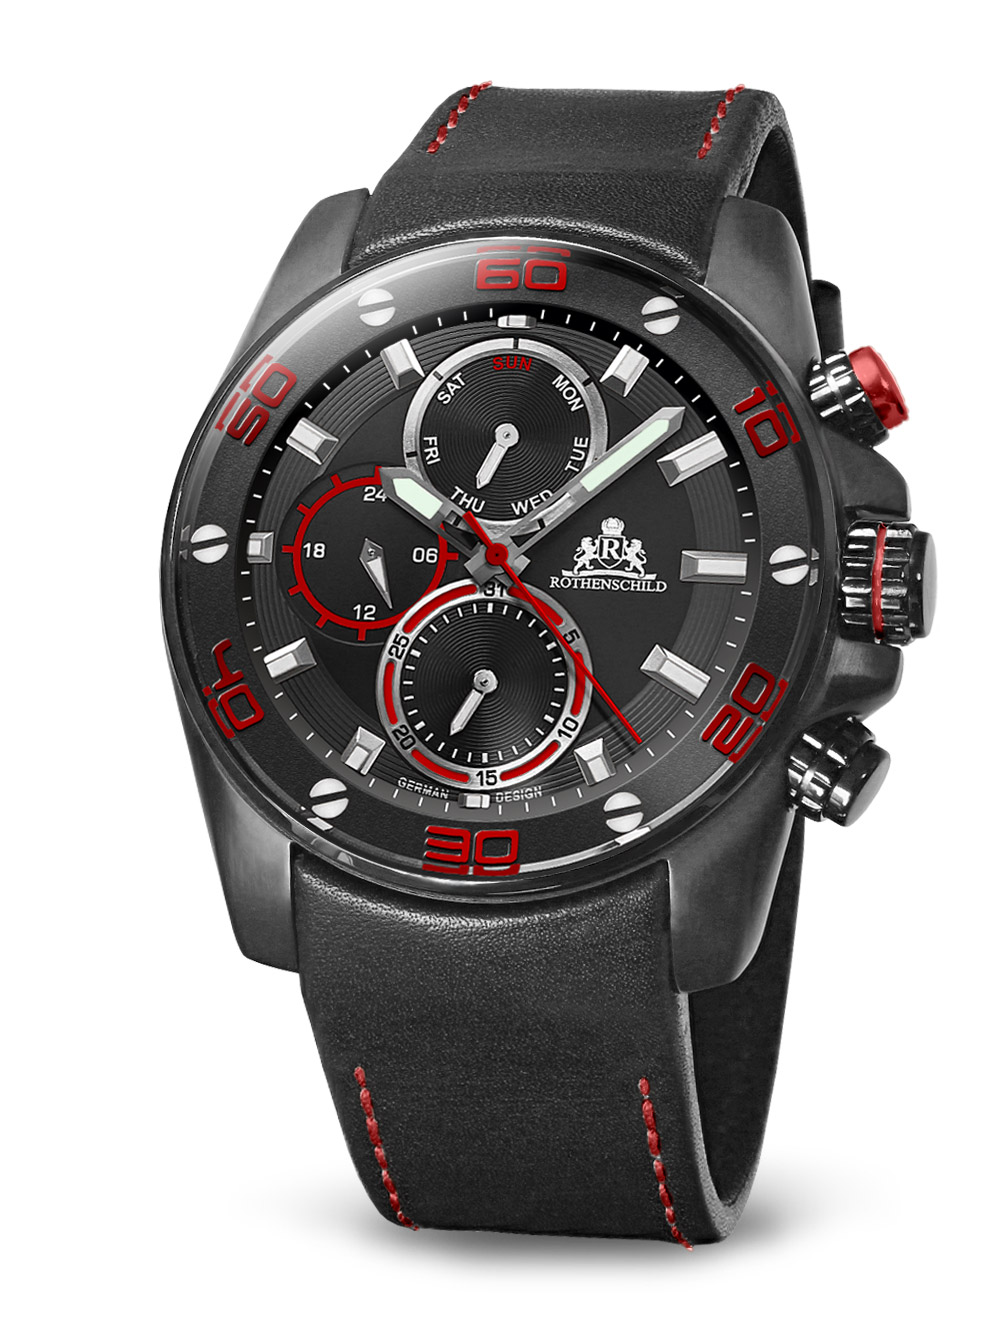 Image of Rothenschild Abyss RS-1405-IB-BKRD red black 46 mm 100M